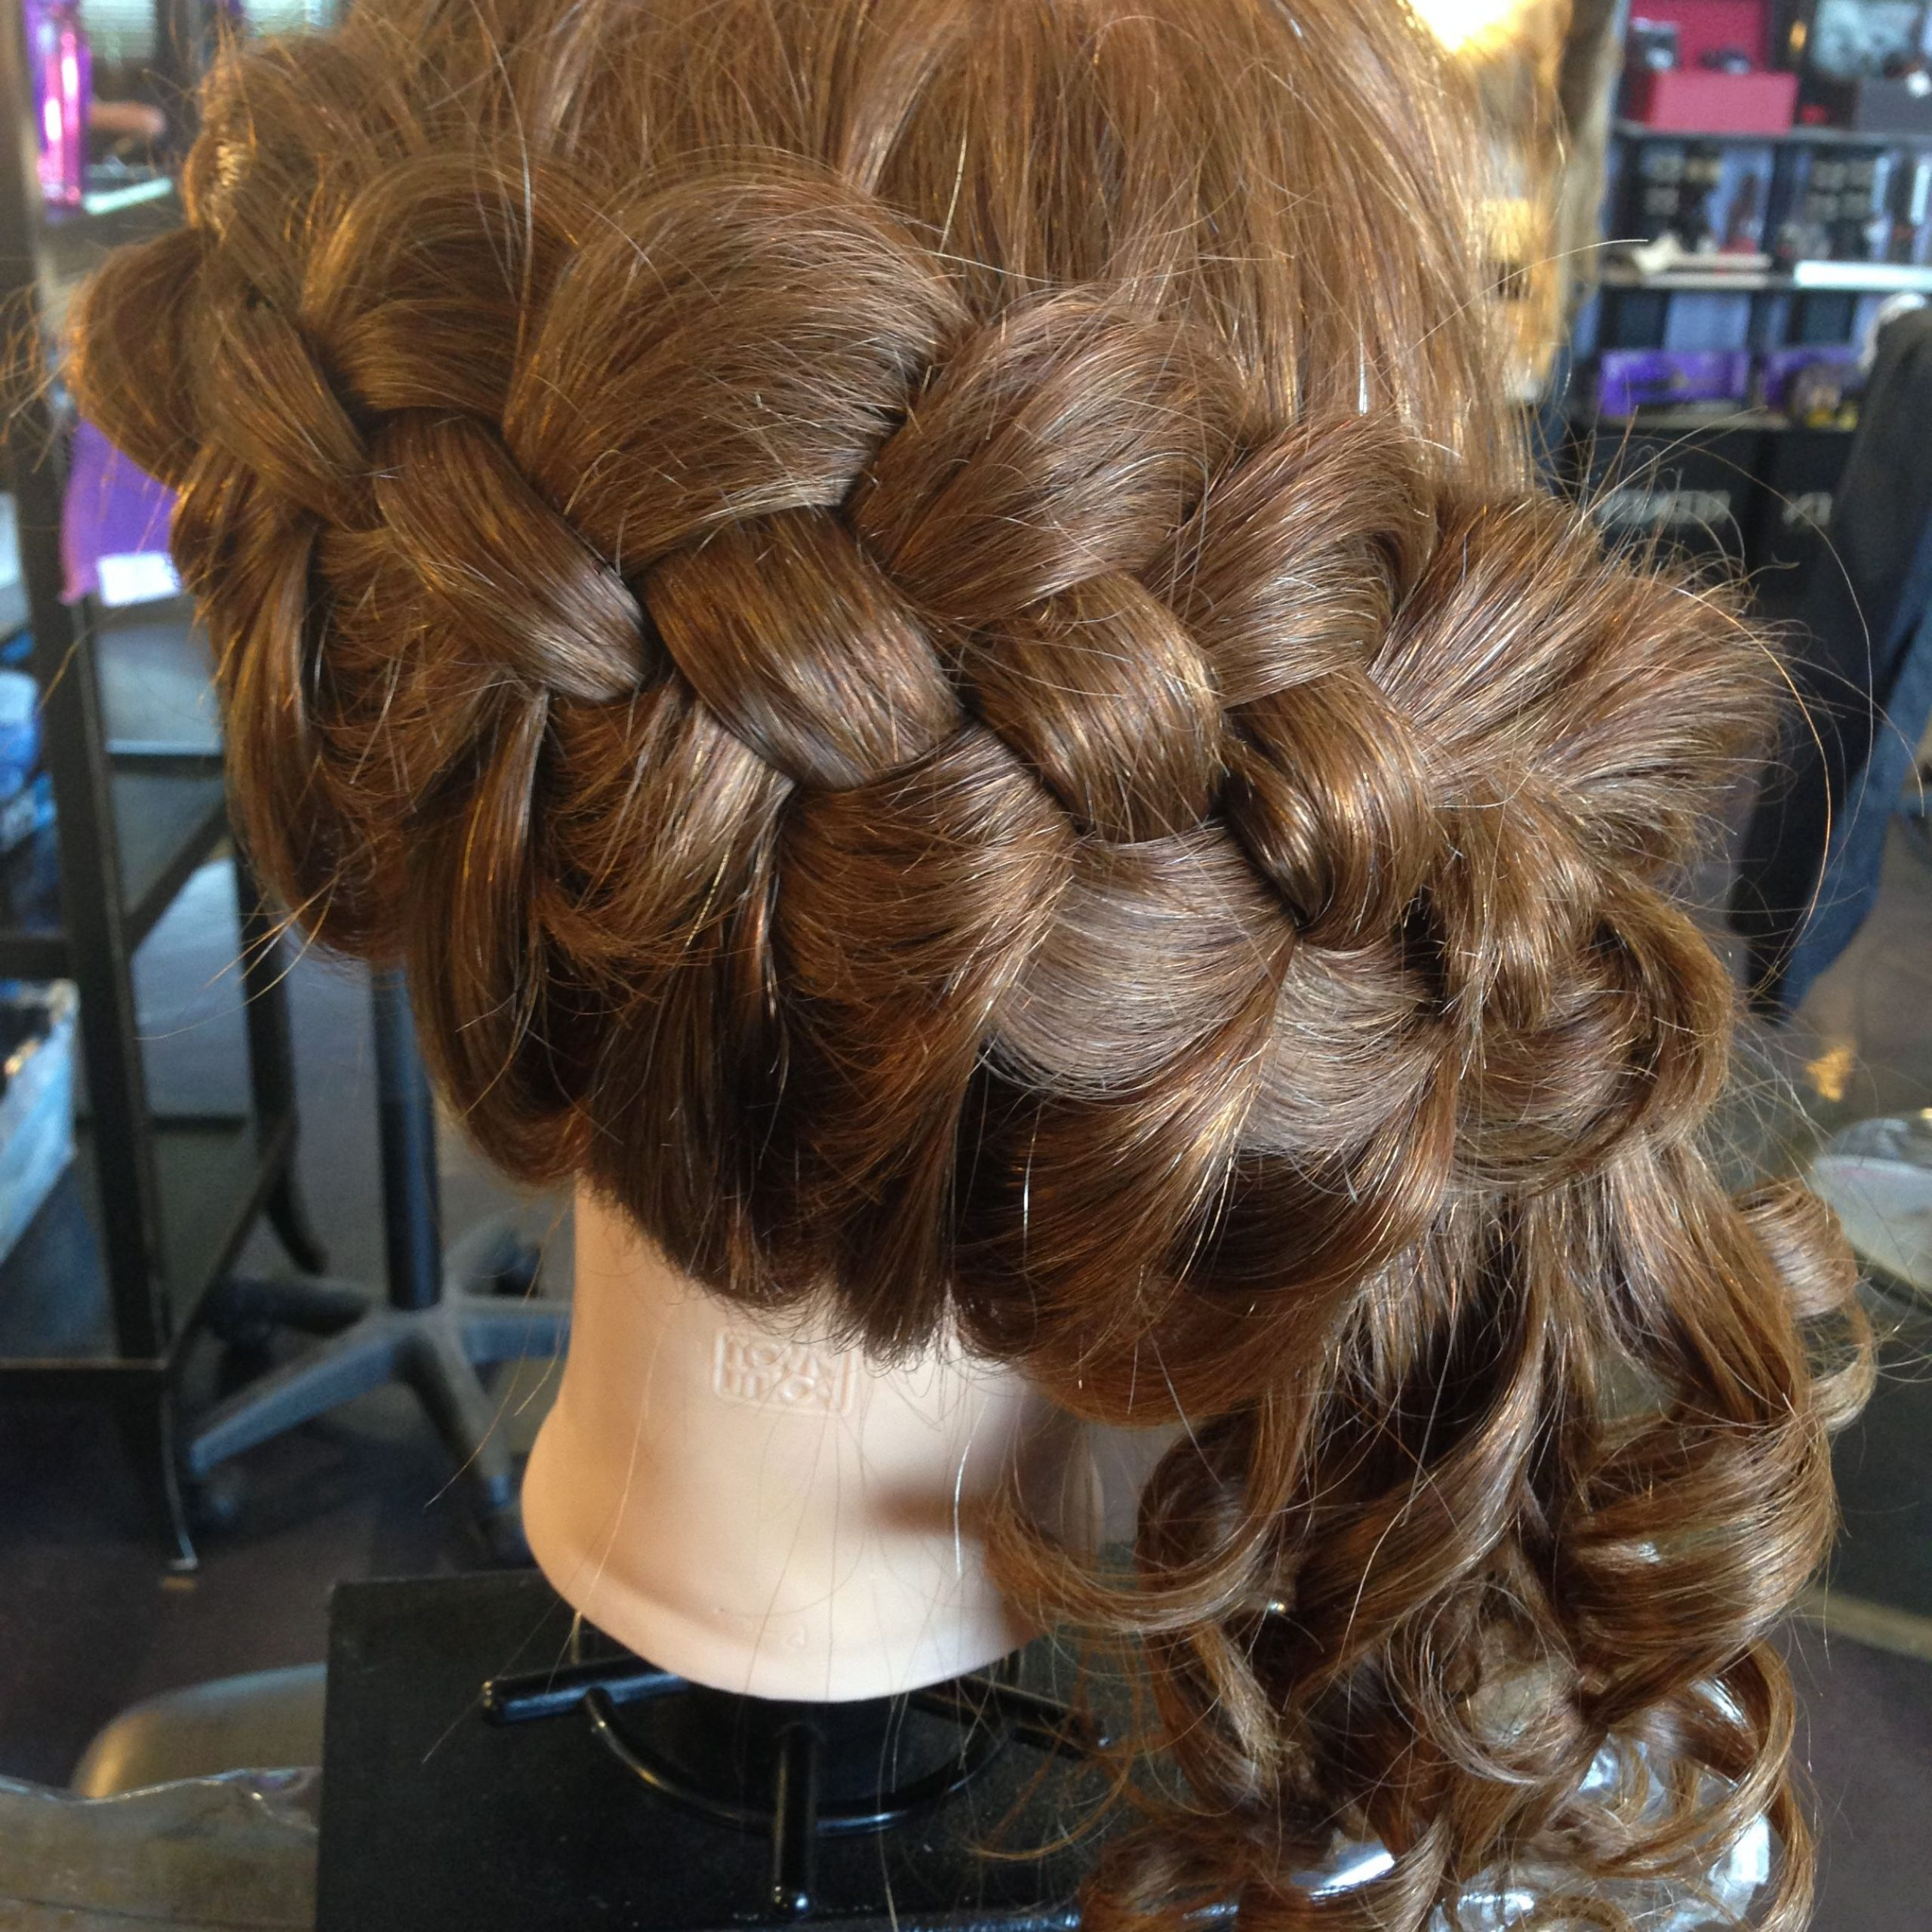 Recent Asymmetrical French Braid Hairstyles Within Asymmetrical Four Strand French Braid Into A Curled Side (View 18 of 20)